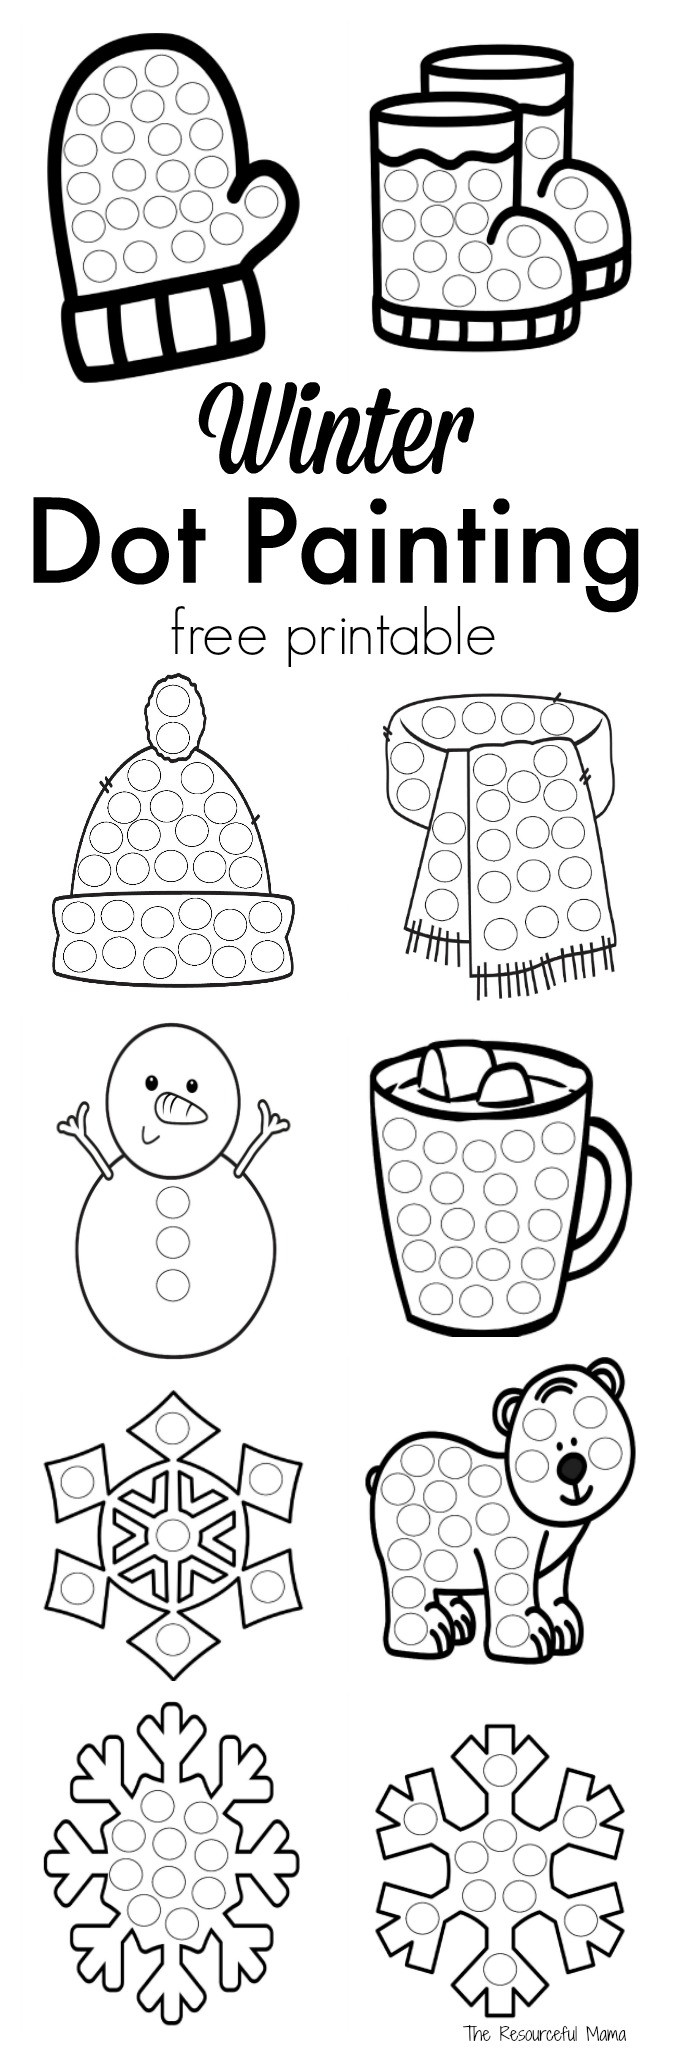 Dot to Dot Art Printables Winter Dot Painting Free Printable the Resourceful Mama